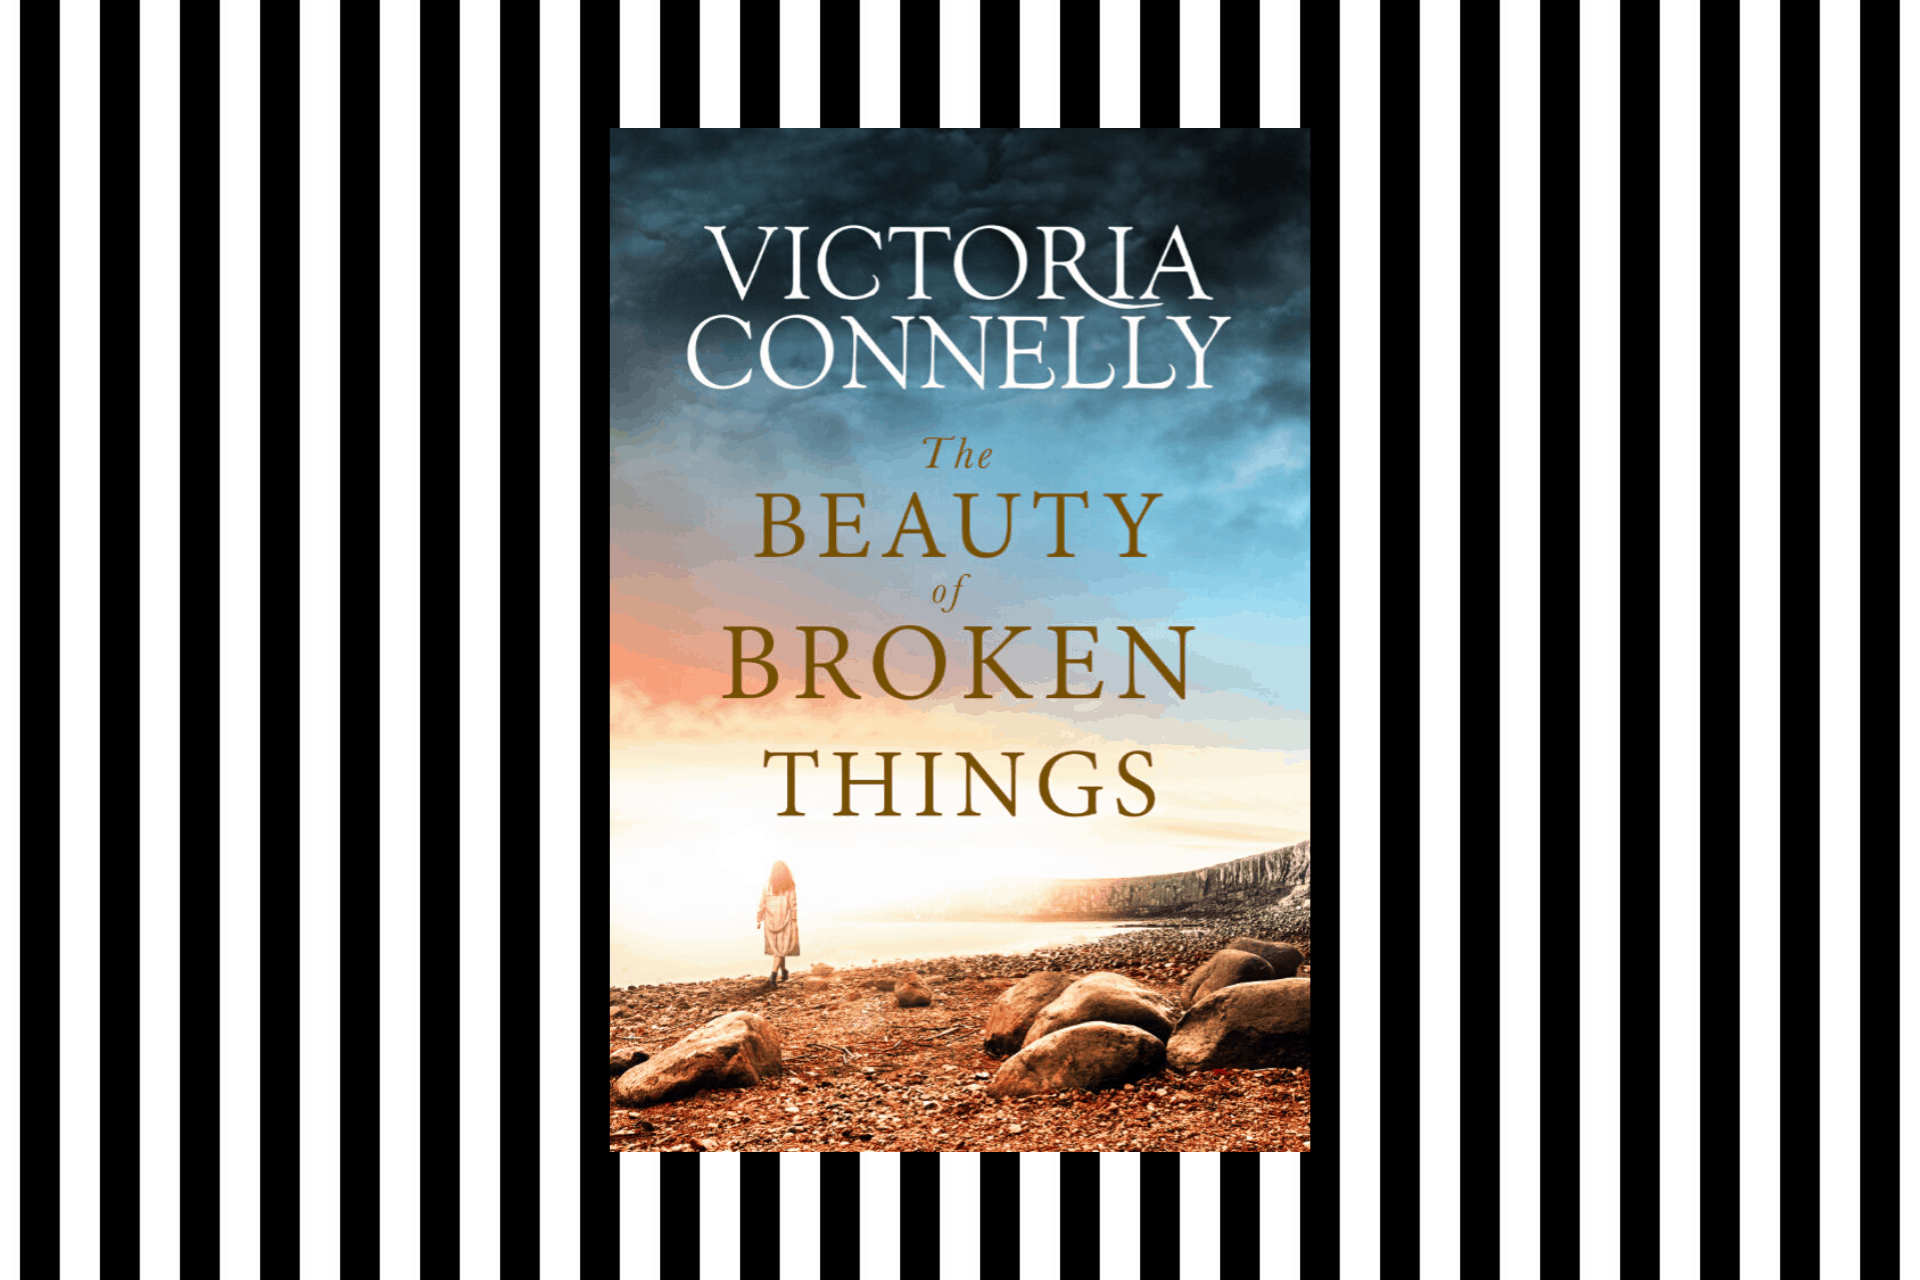 The cover for The Beauty of Broken Things by Victoria Connelly